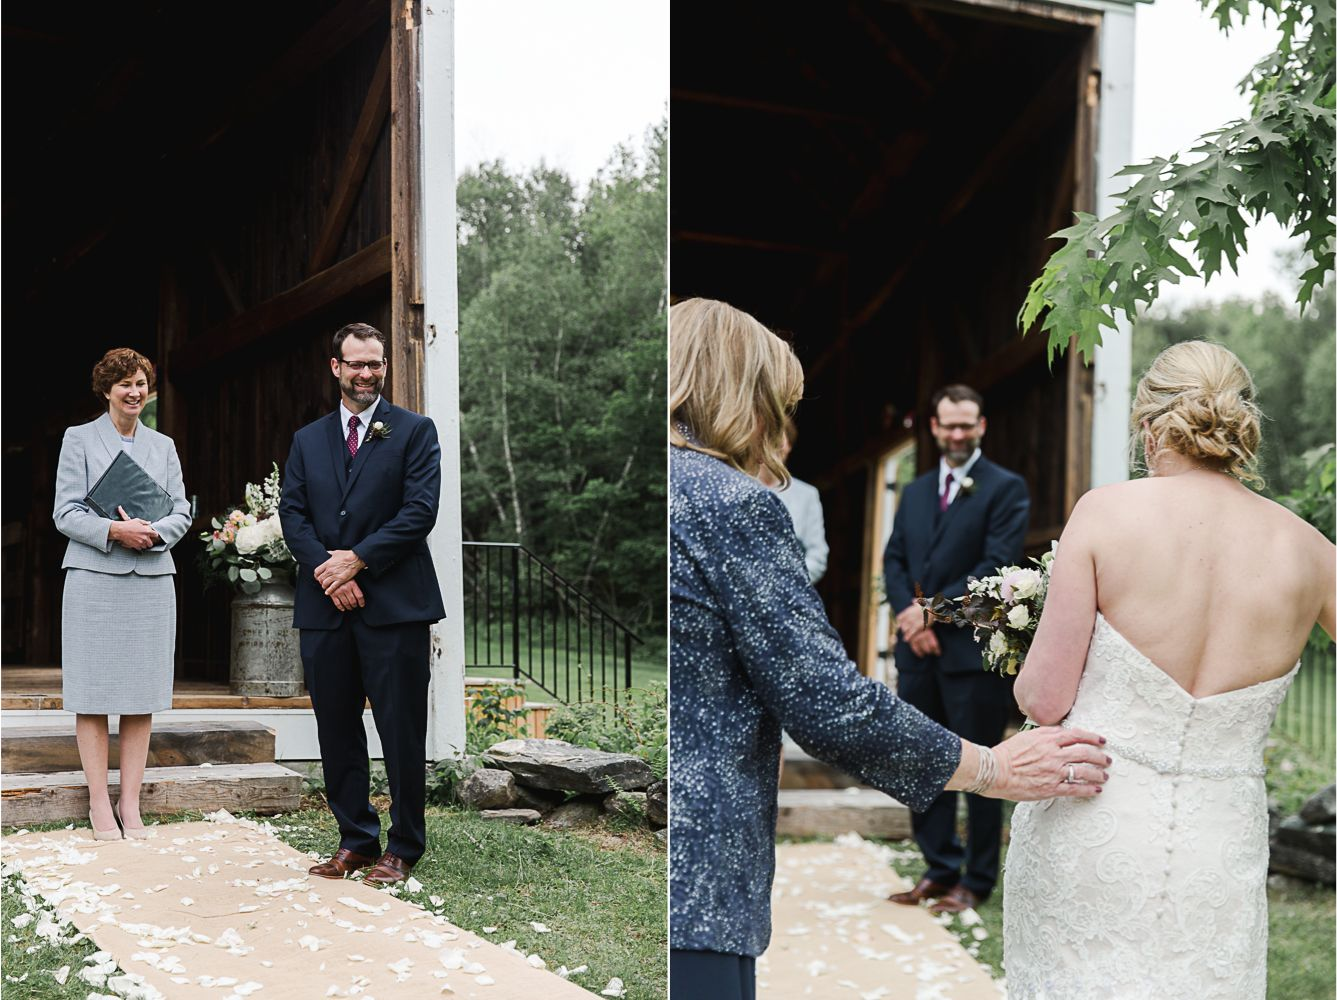 Cunningham Farm Elopement In New Gloucester Maine And Sailboat Reception In Casco Bay Maine Wedding Photographer Sailboat Reception Fine Art Wedding Photography